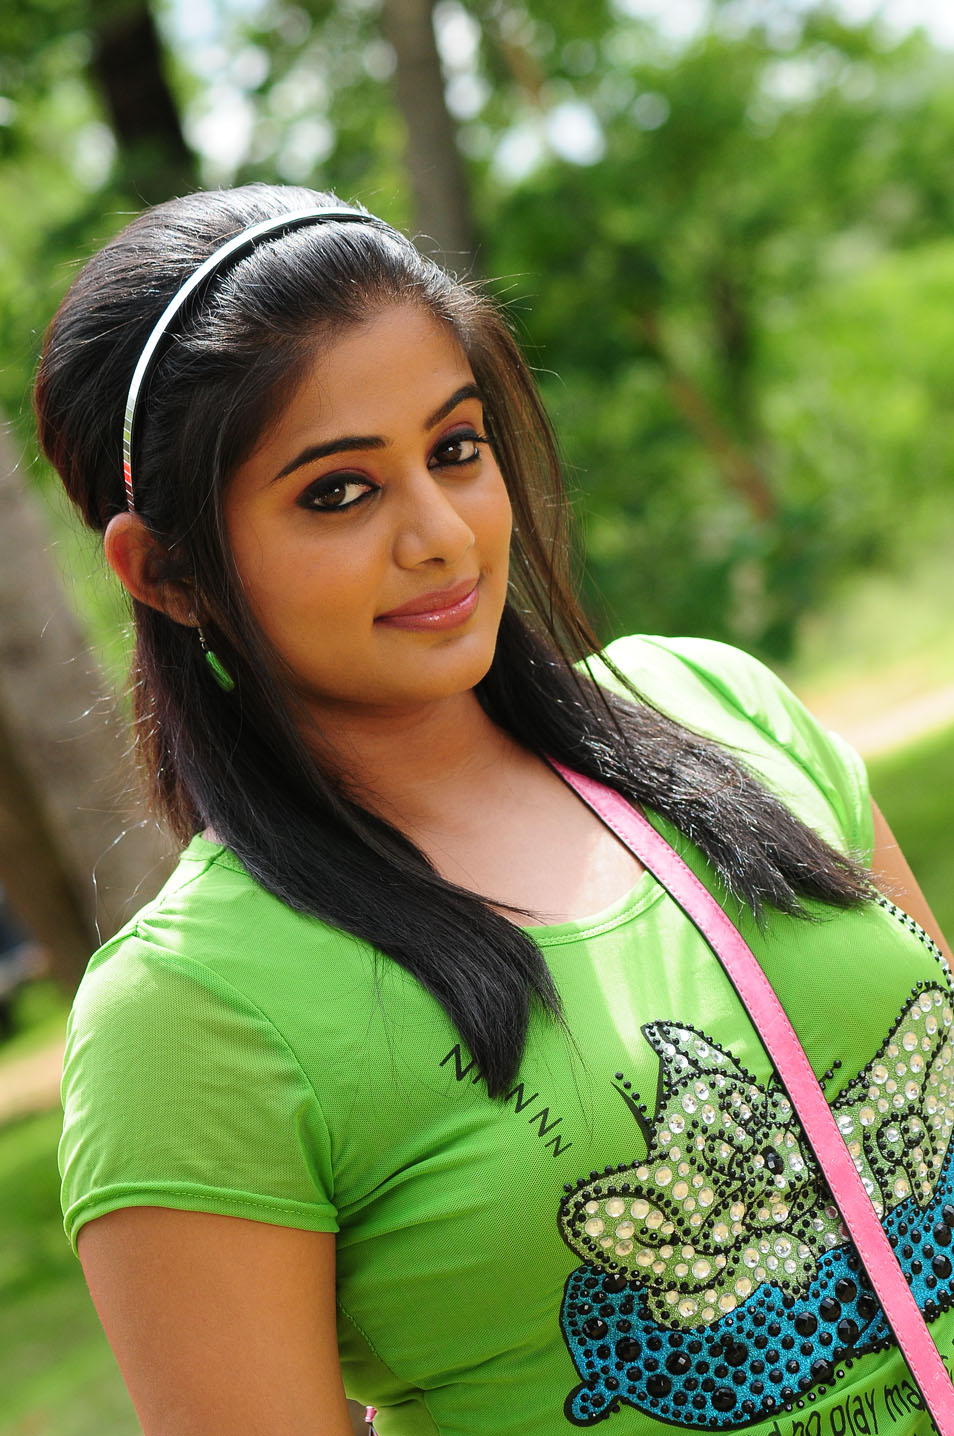 priyamani tollywood actress latest stills photoshoot movie shirt cute dress indian india south without spicy